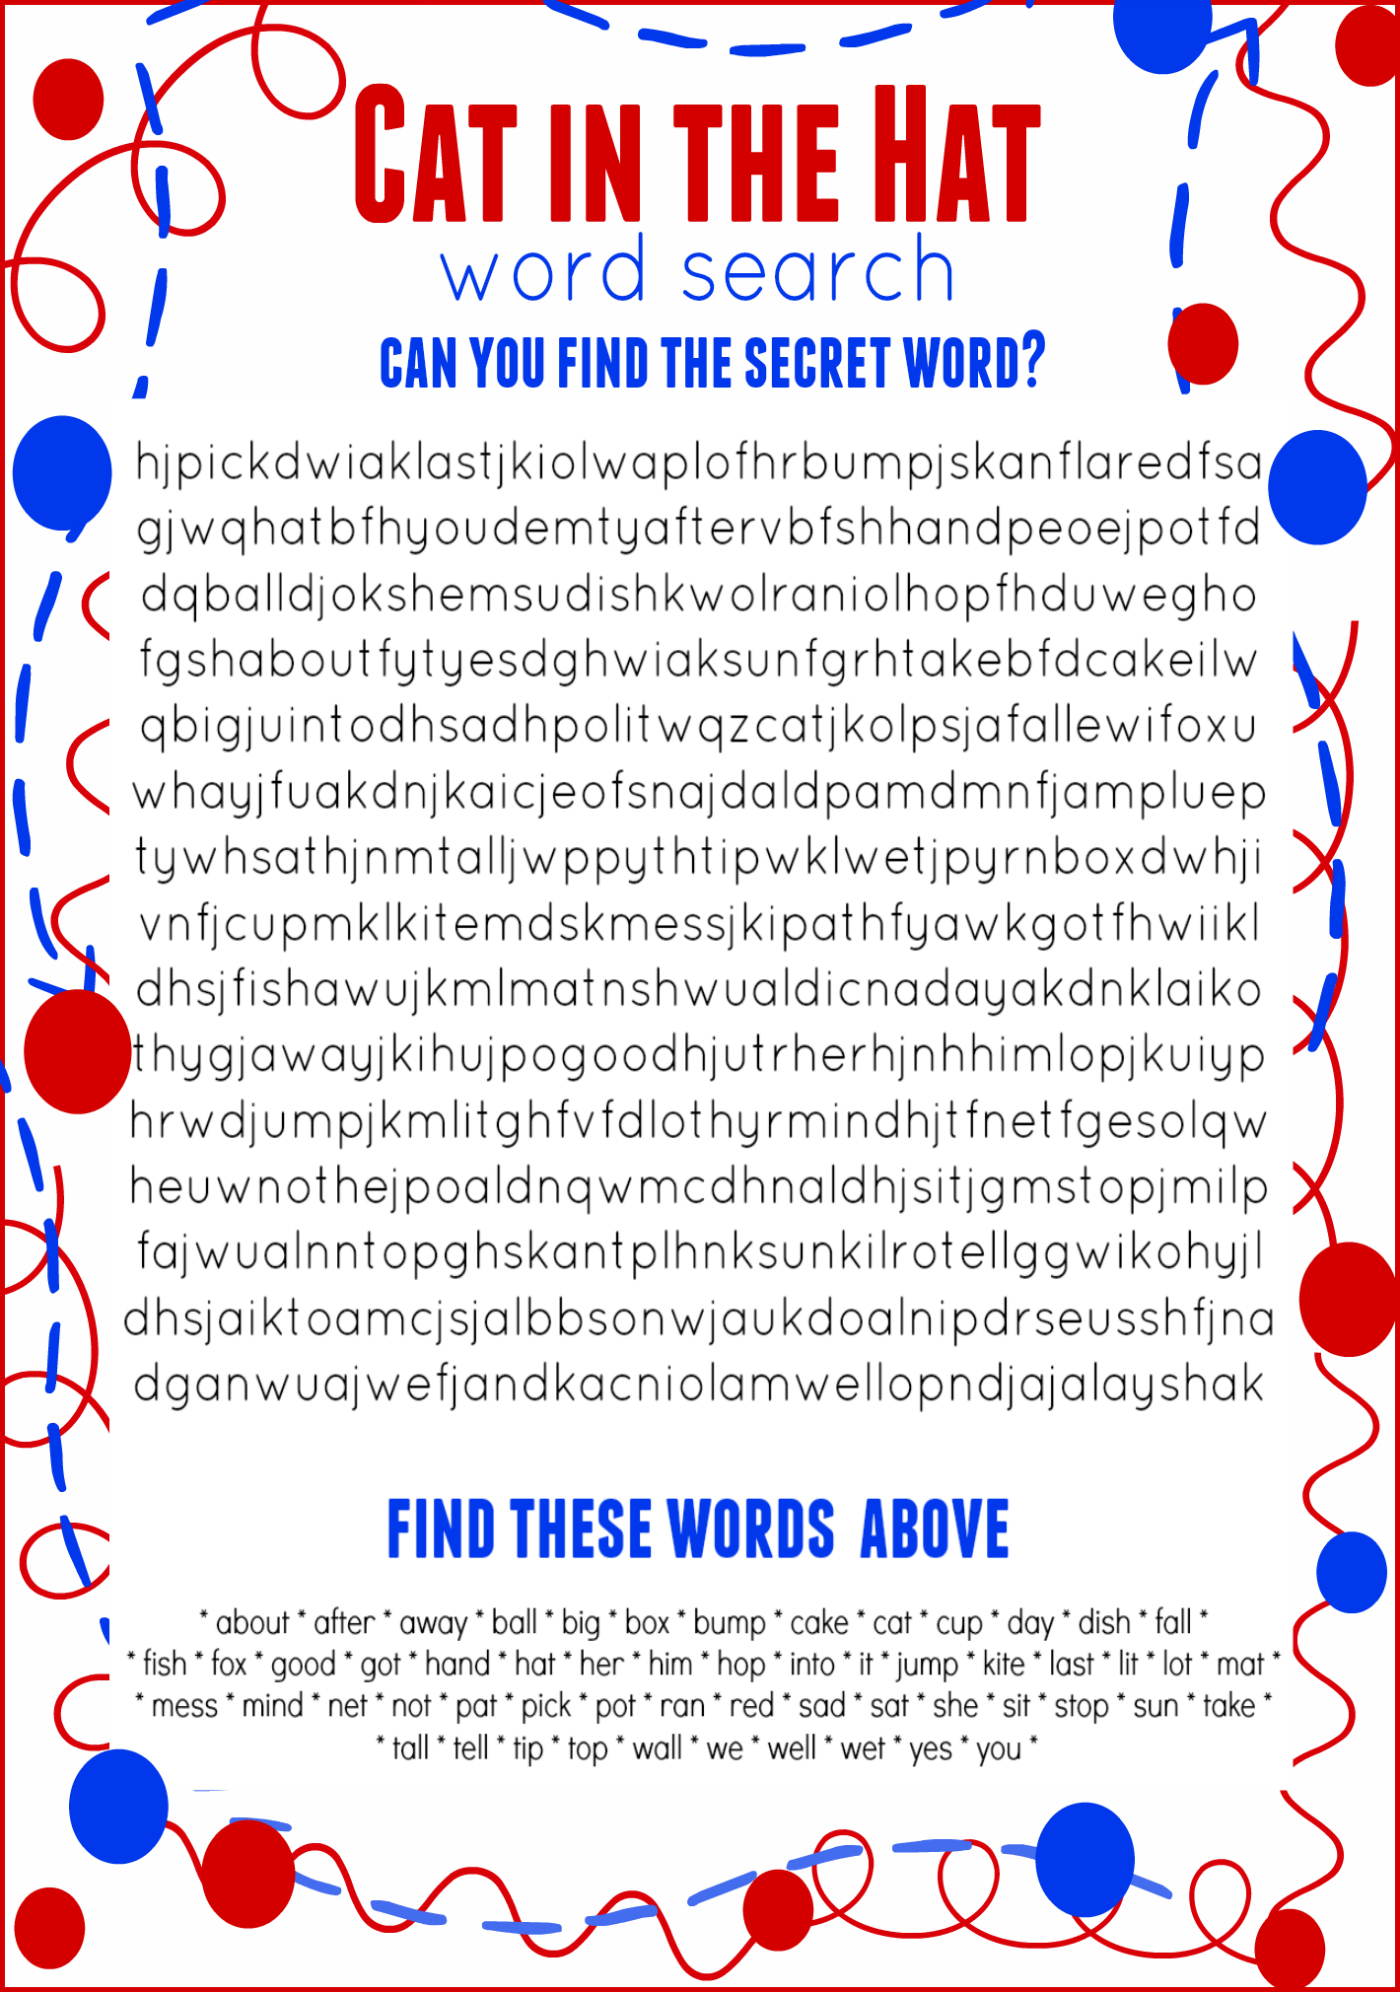 Cat In The Hat Word Search Free Printable Dr. Seuss Birthday - Cat In The Hat Free Printable Worksheets